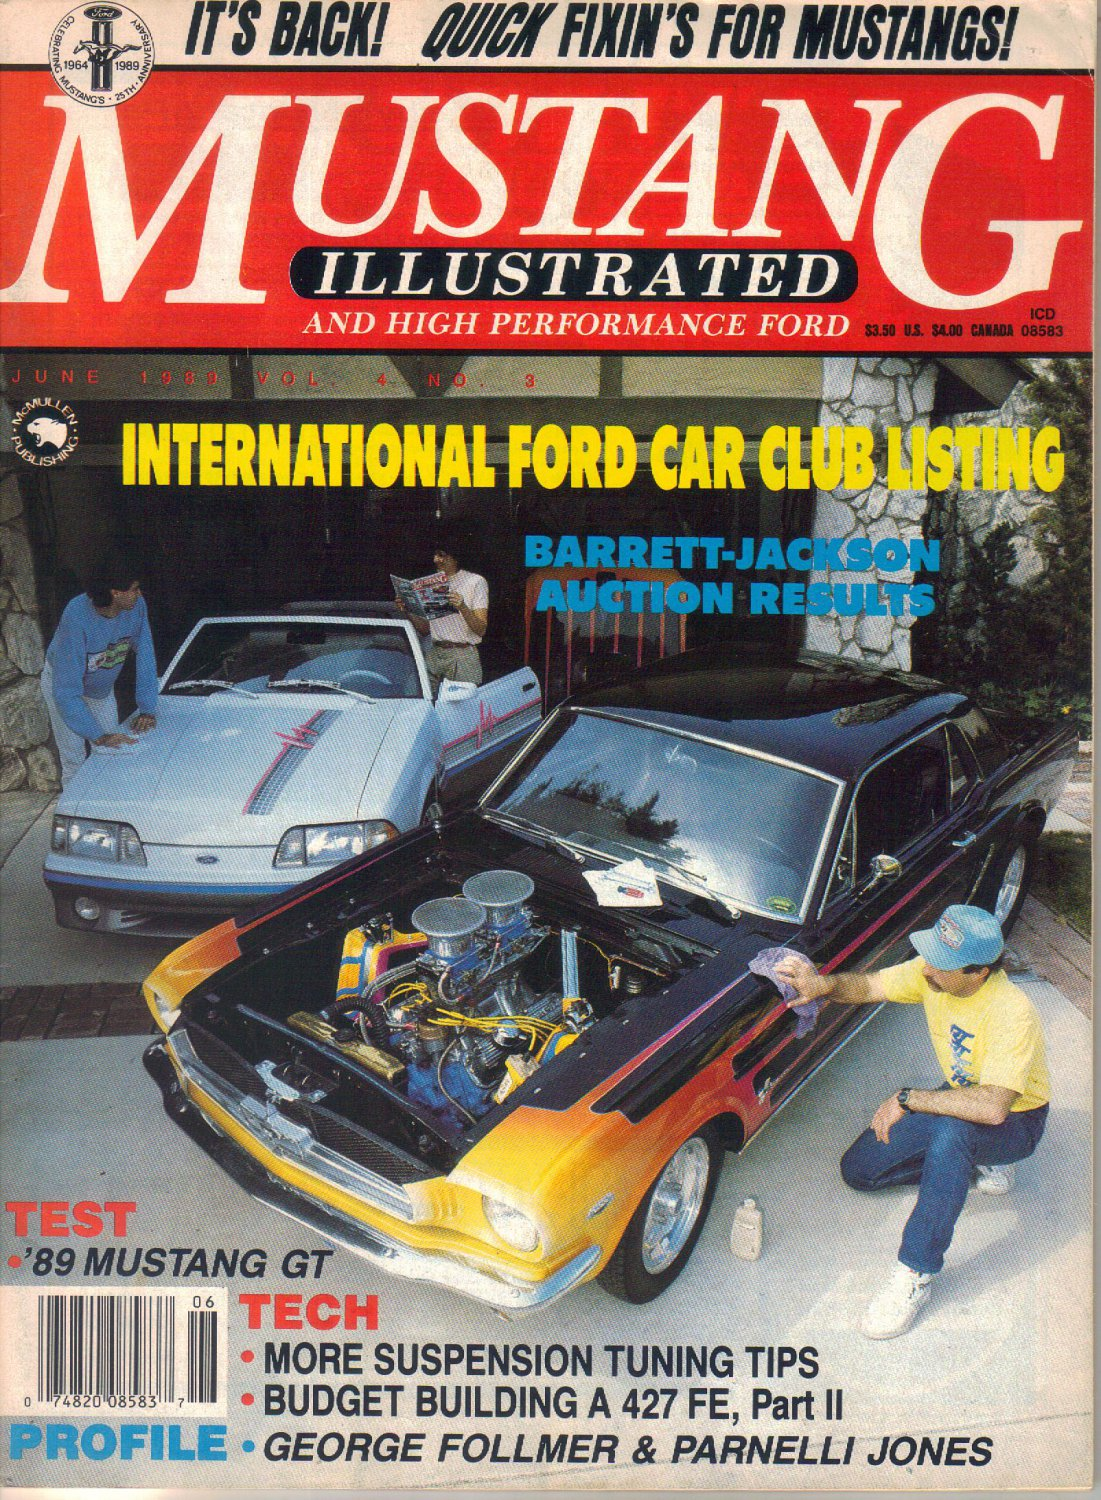 Mustang Illustrated and High Performance Ford Magazine-June 1989- Rob Taylor-1965 Mustang Coupe